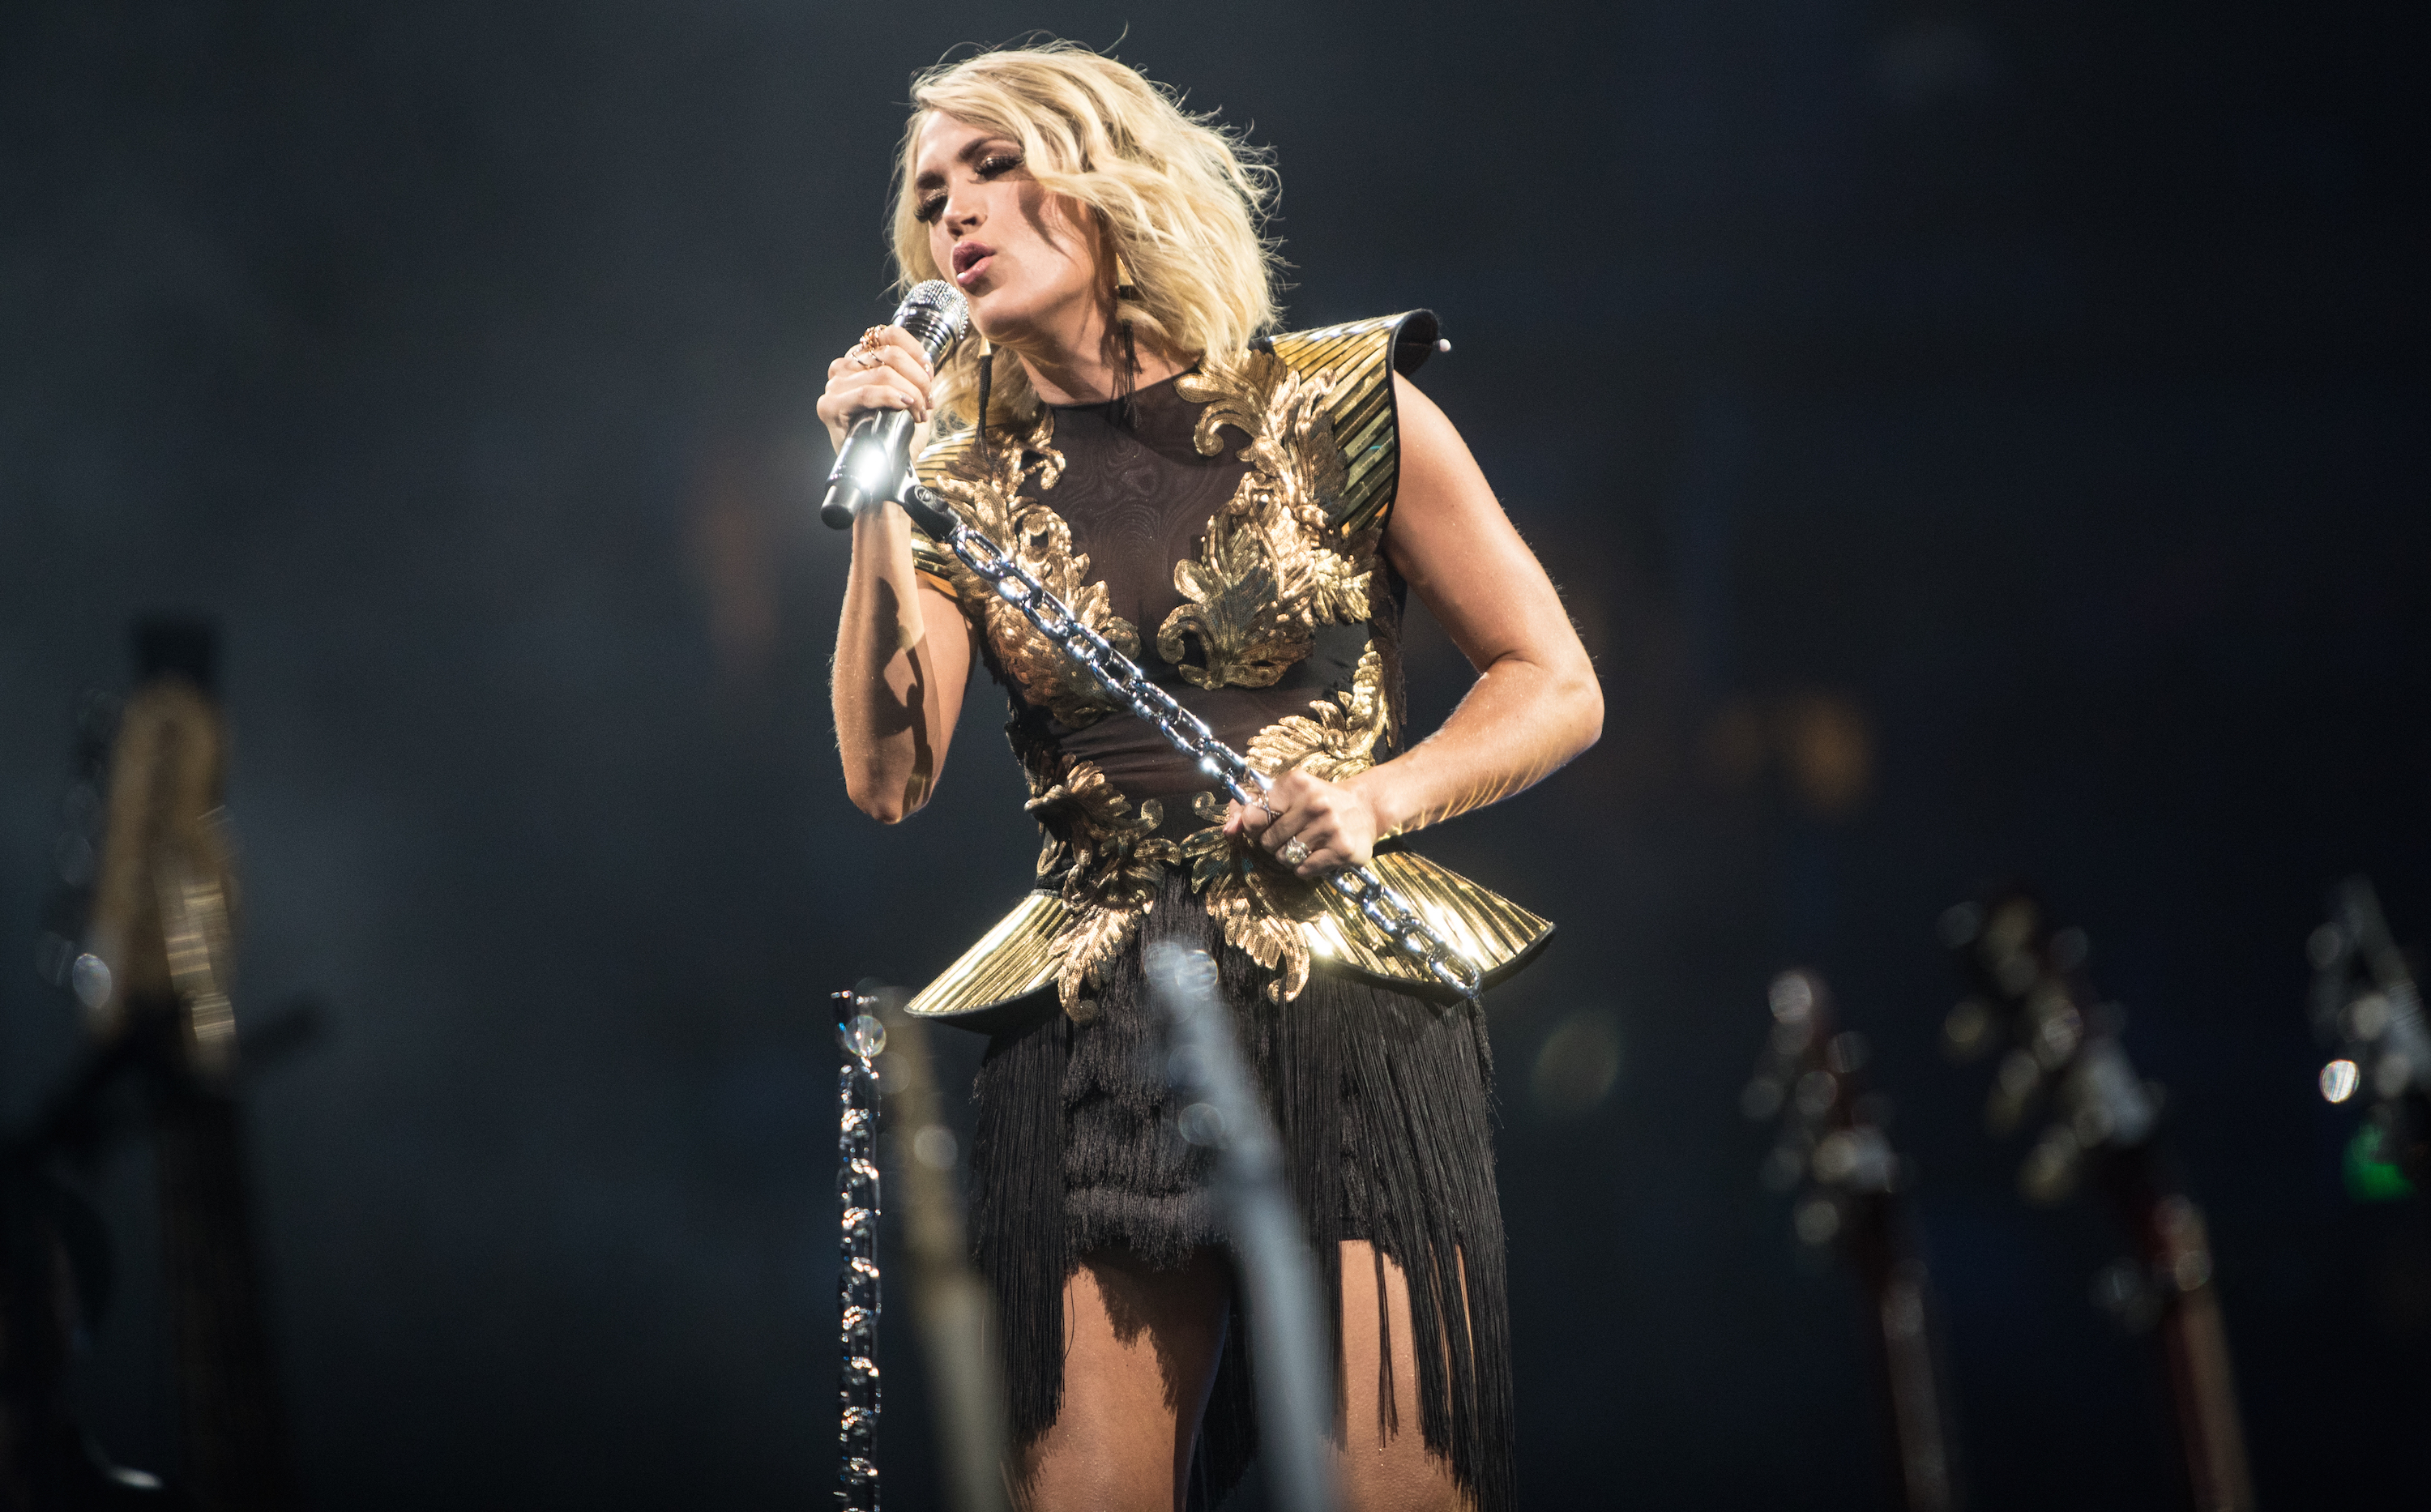 Carrie Underwood will perform at ACM Awards, months after 'gruesome' face injury